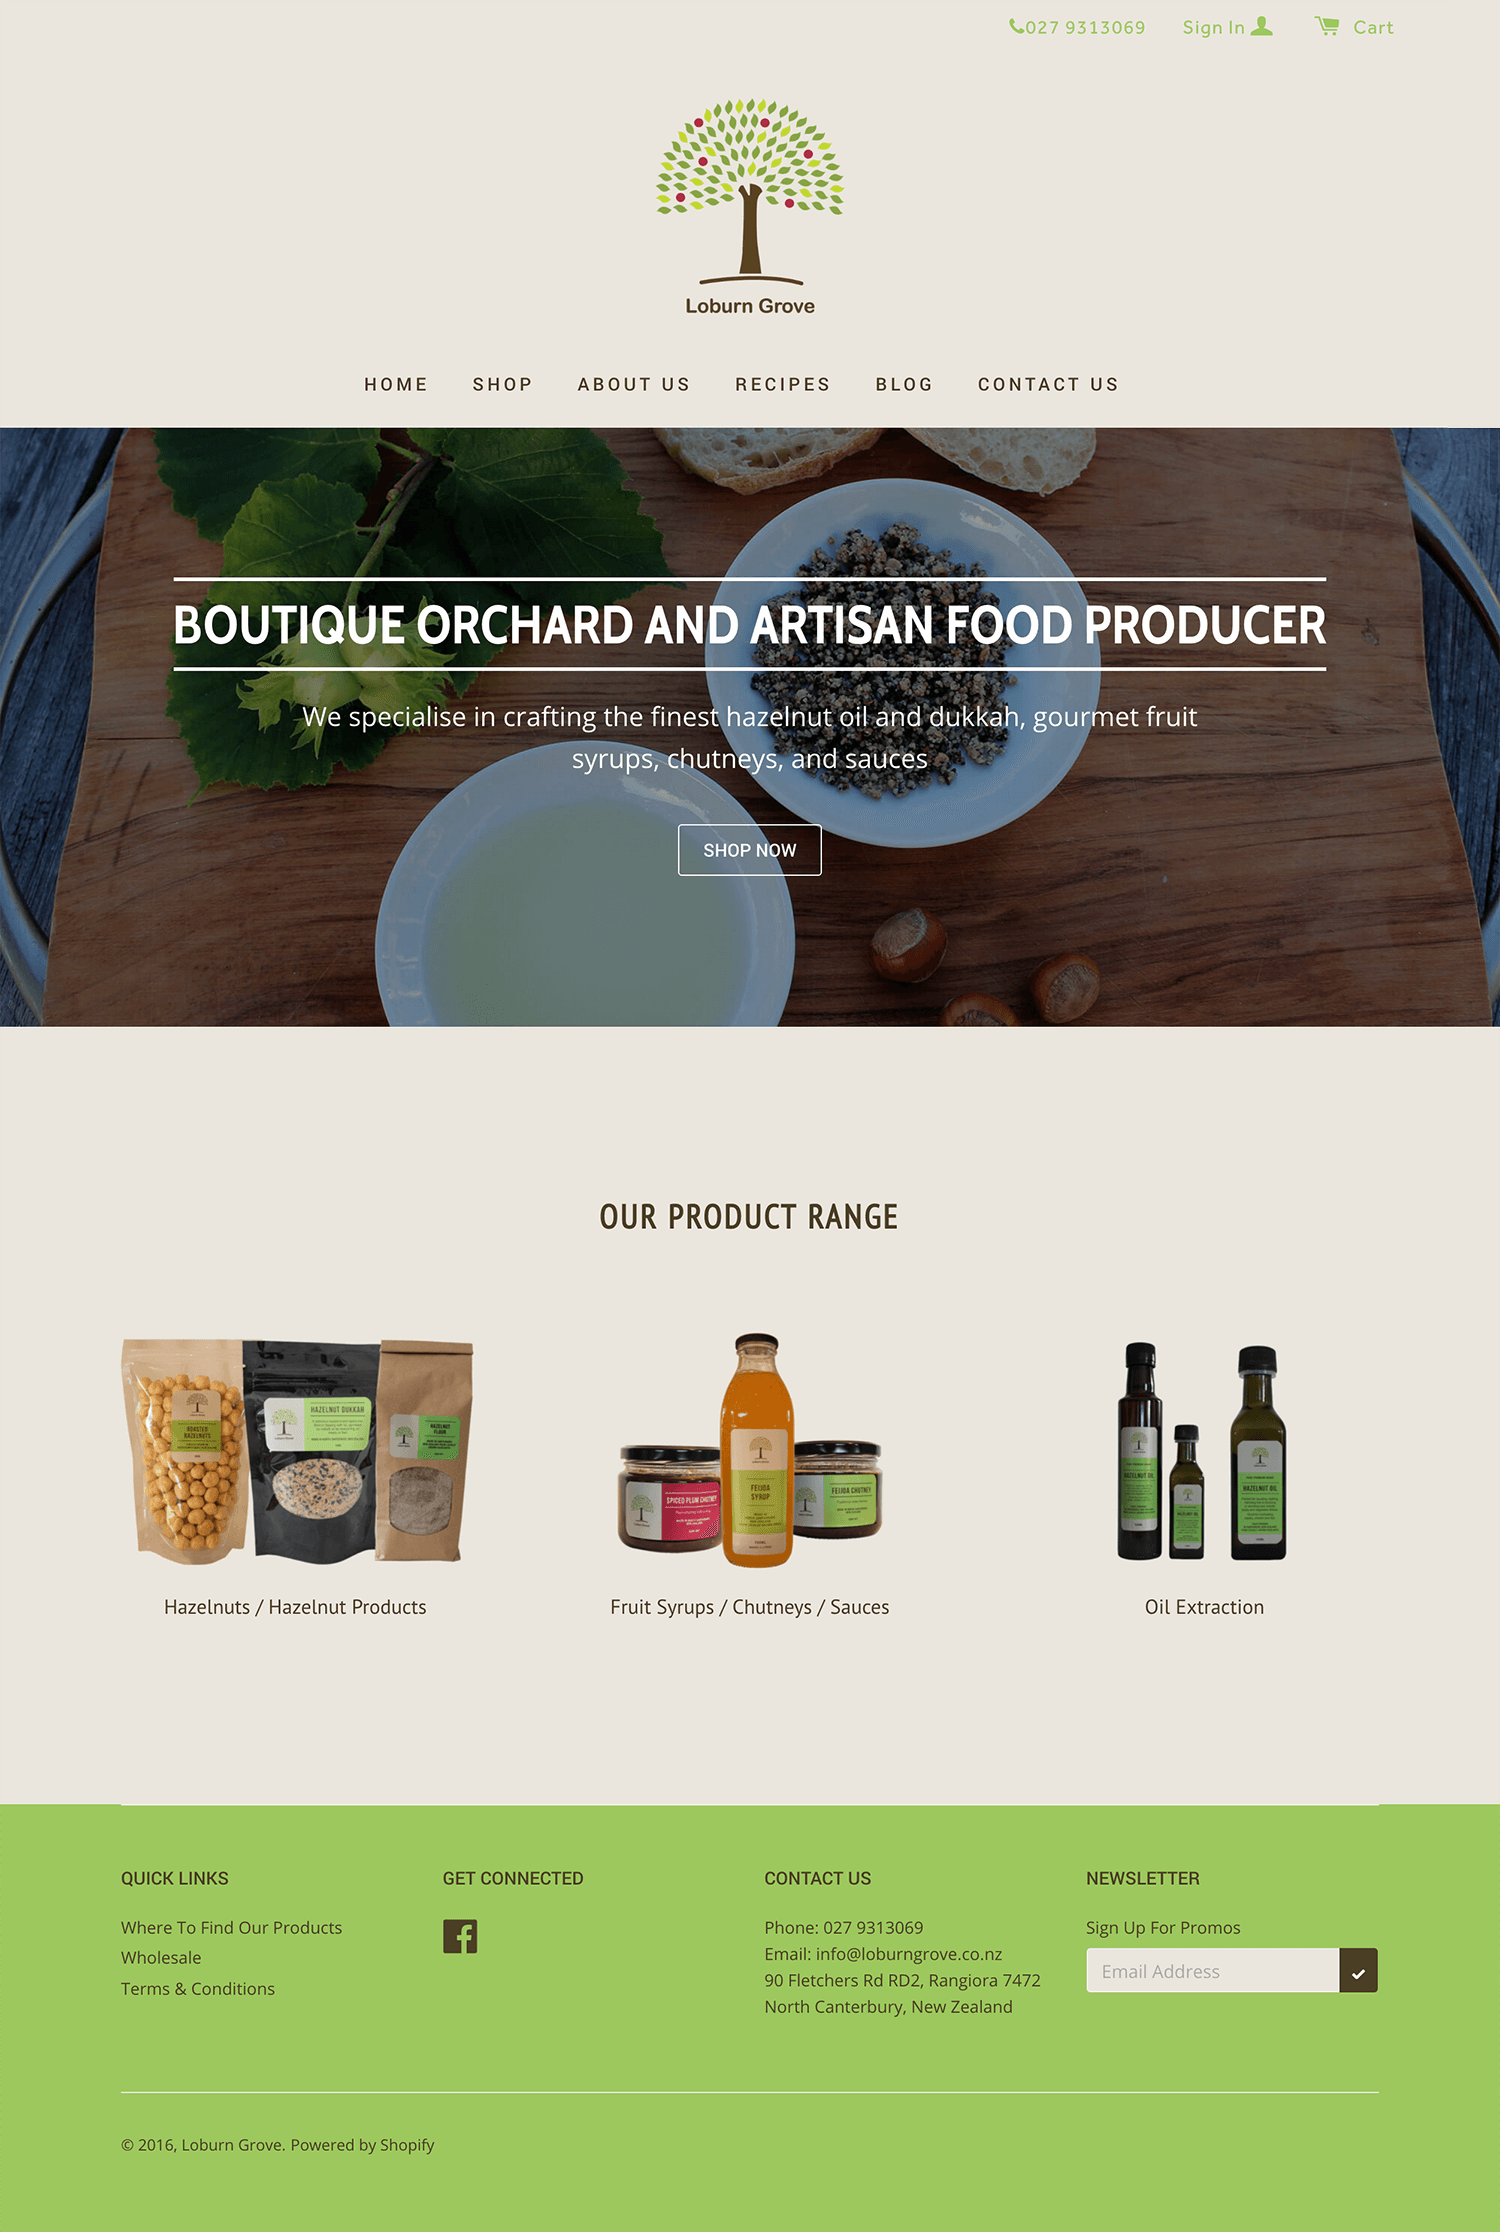 Loburn Grove Orchard - Home page